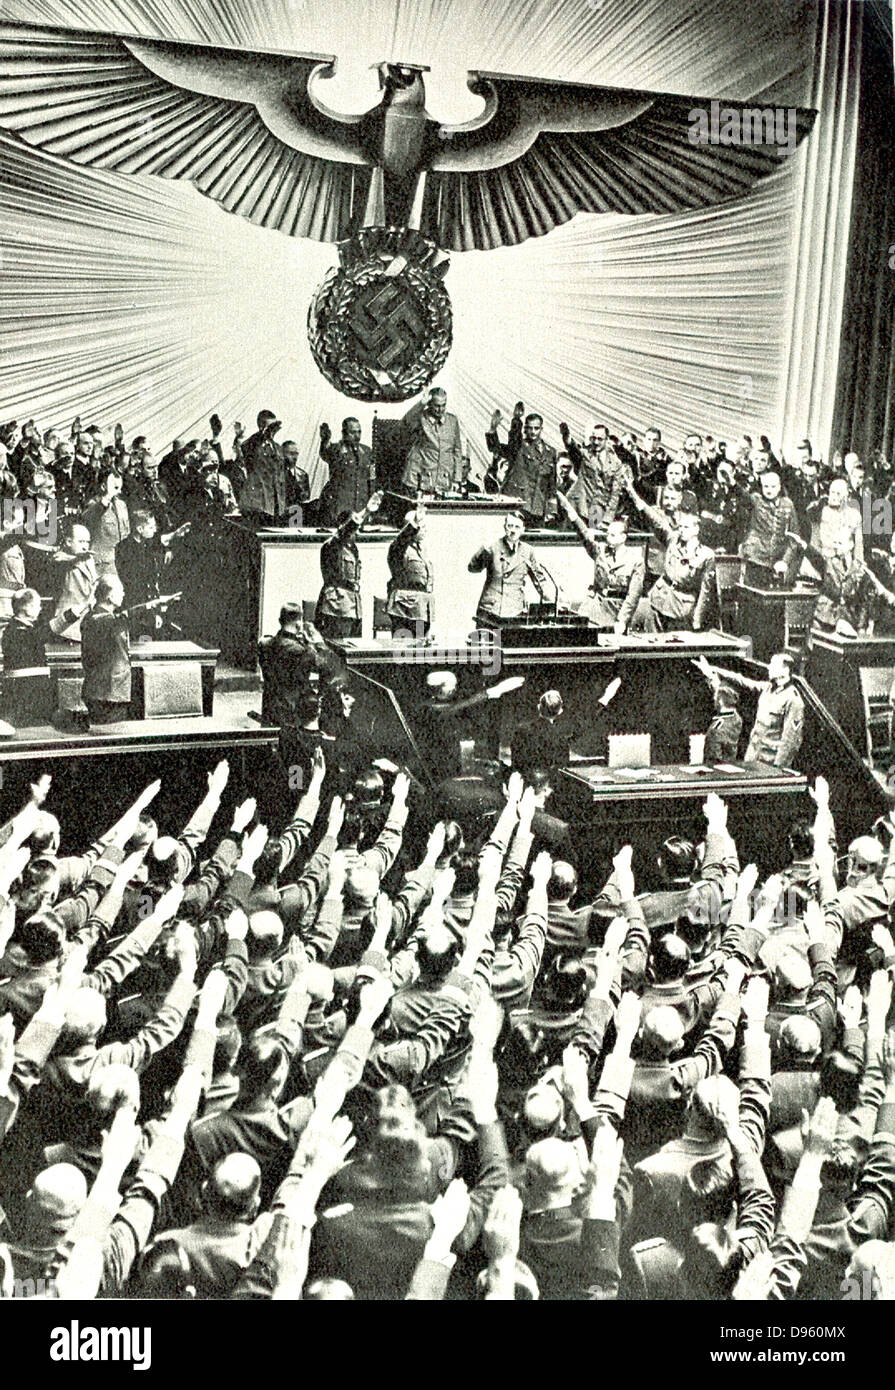 Adolf Hitler addressing a meeting in the Reichstag circa 1935. - Stock Image